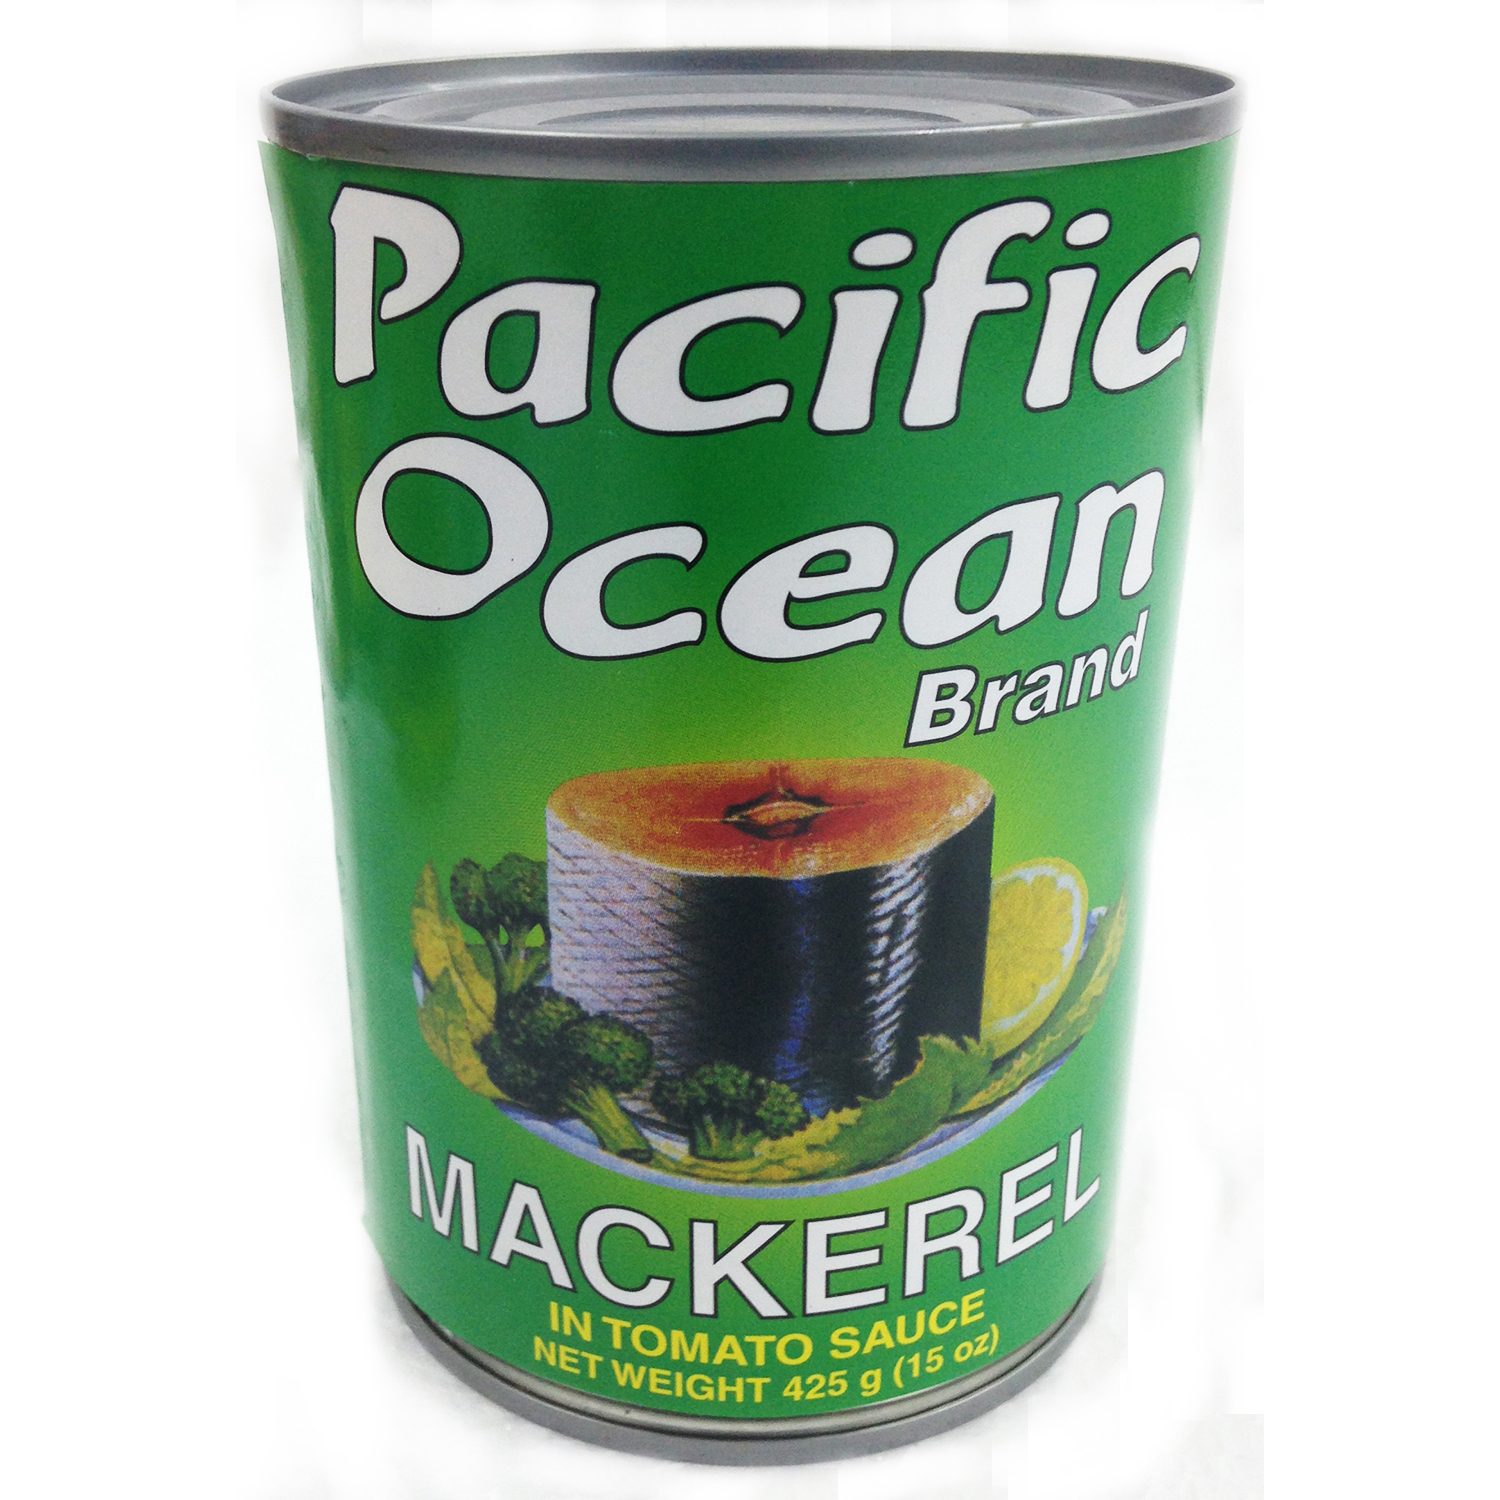 Pacific Ocean Mackerel T/Sauce